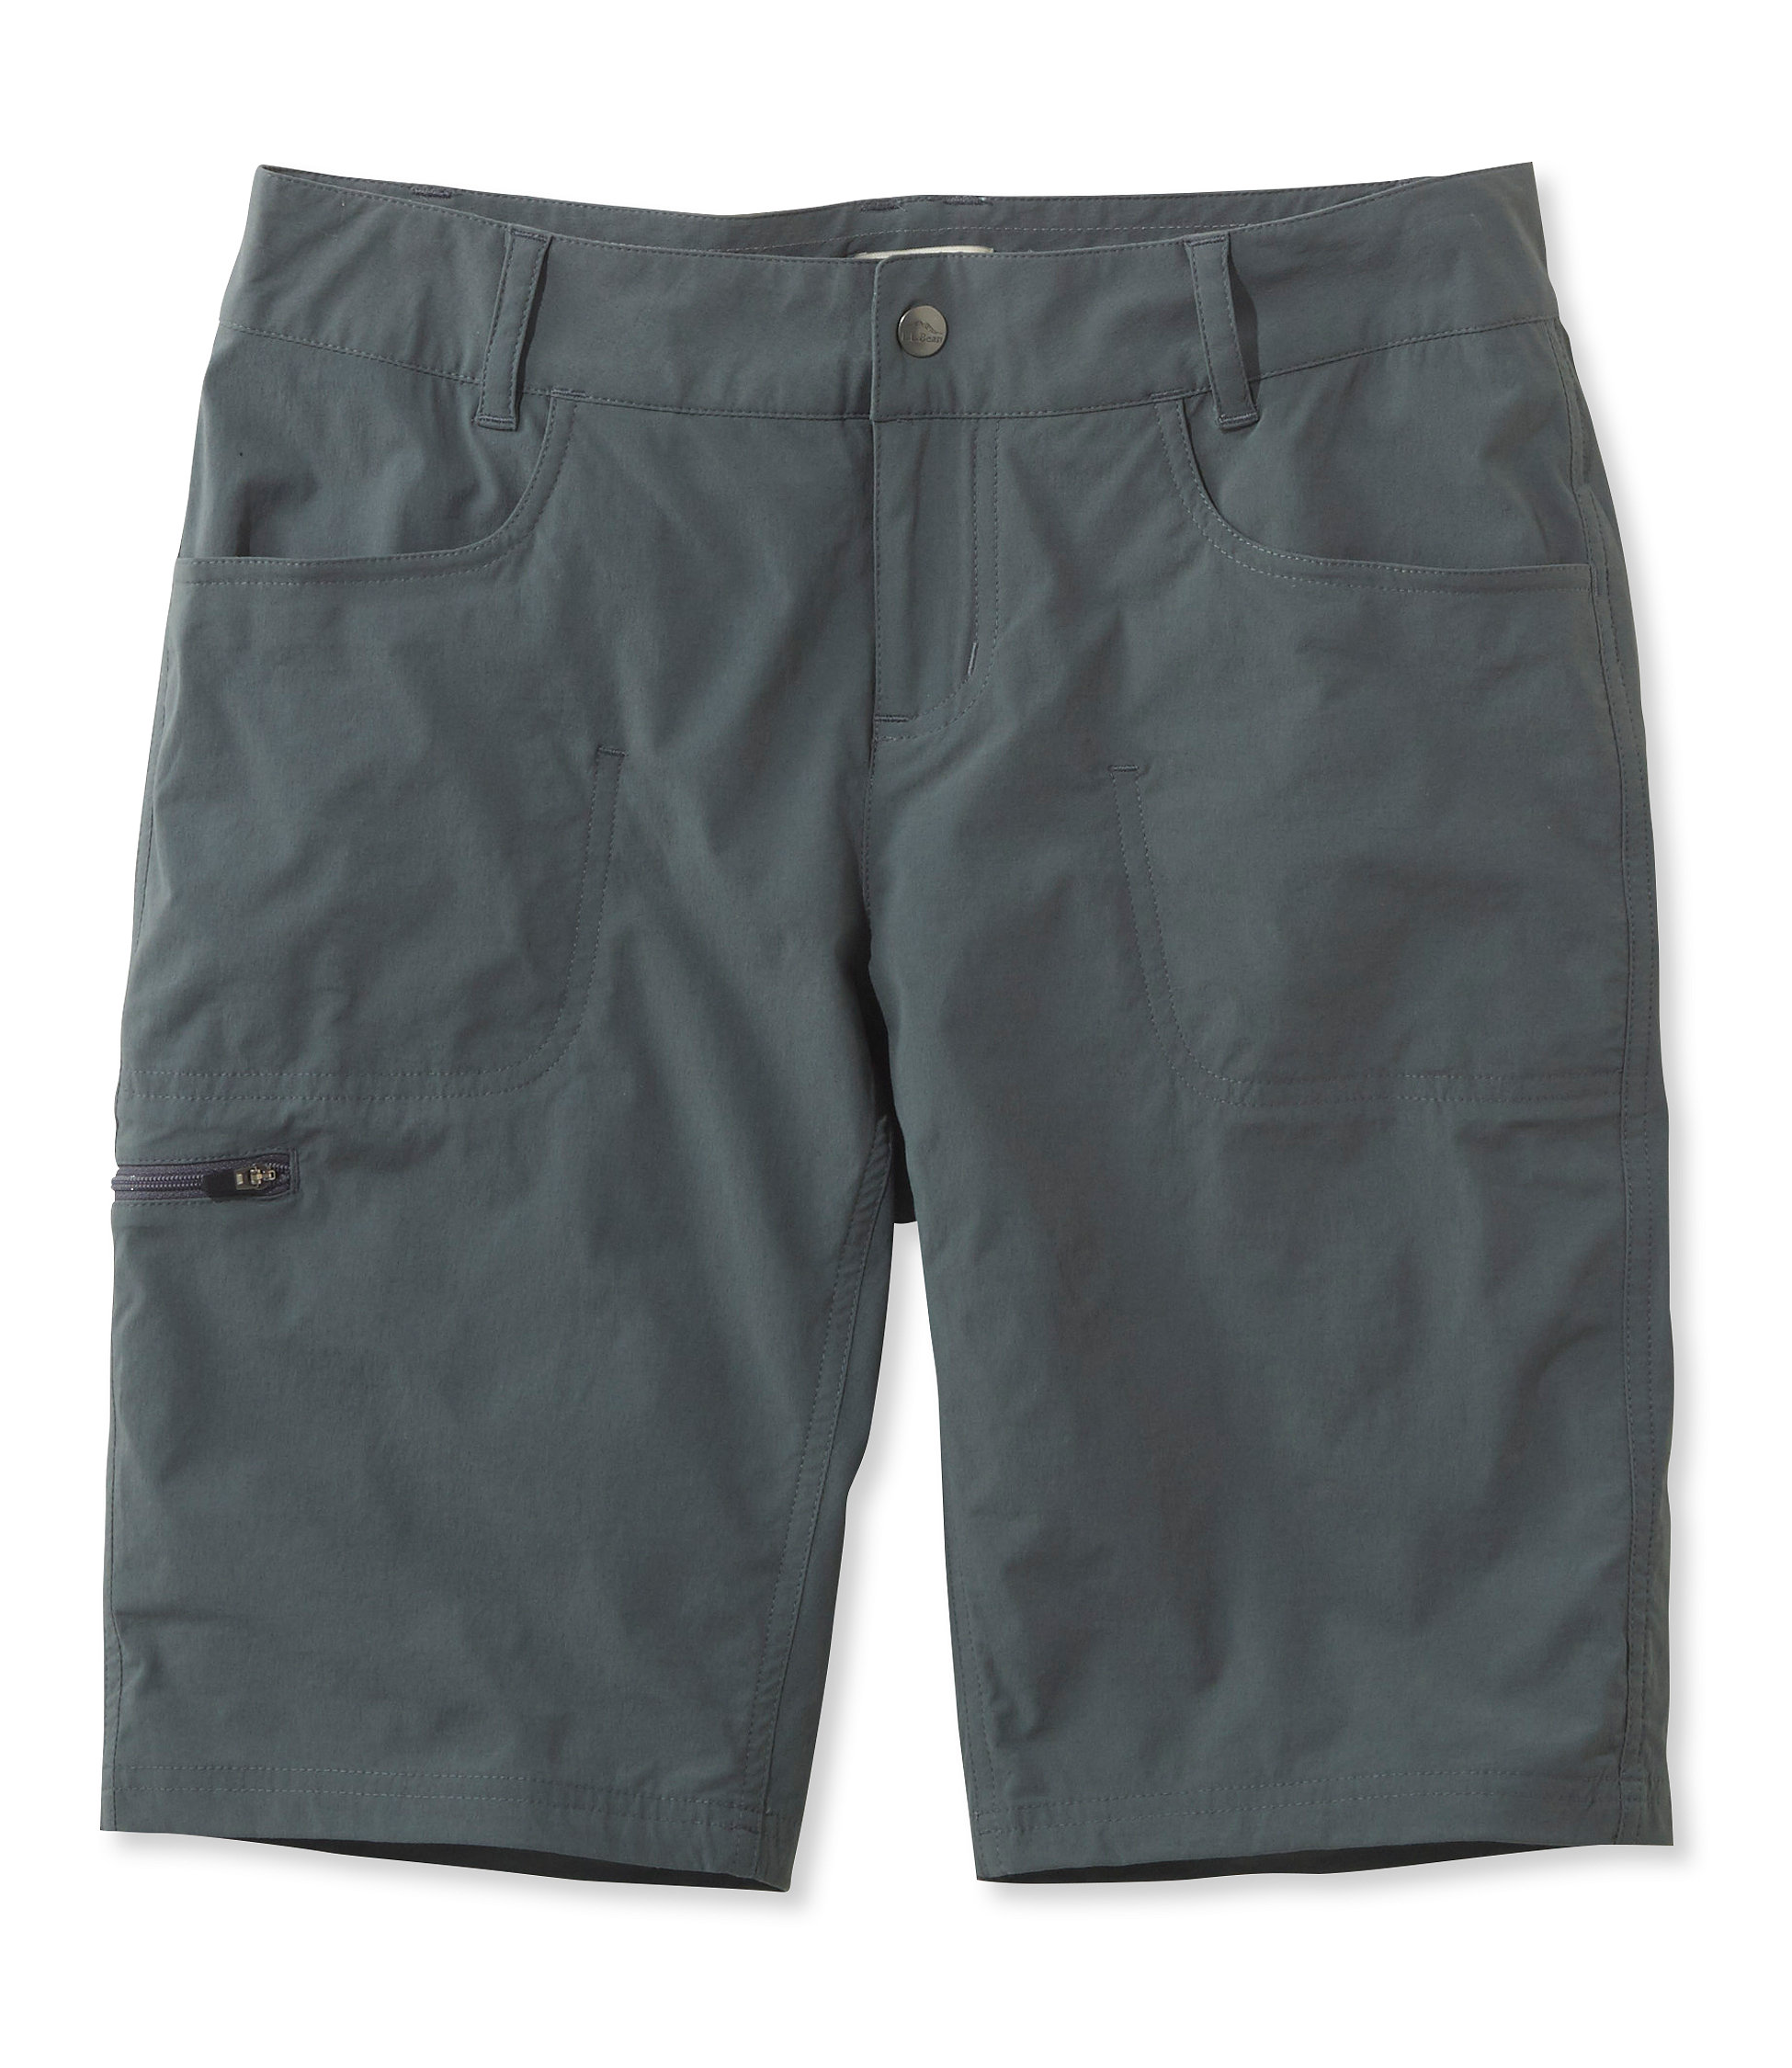 L.L.Bean Cresta Trail Bermuda Short